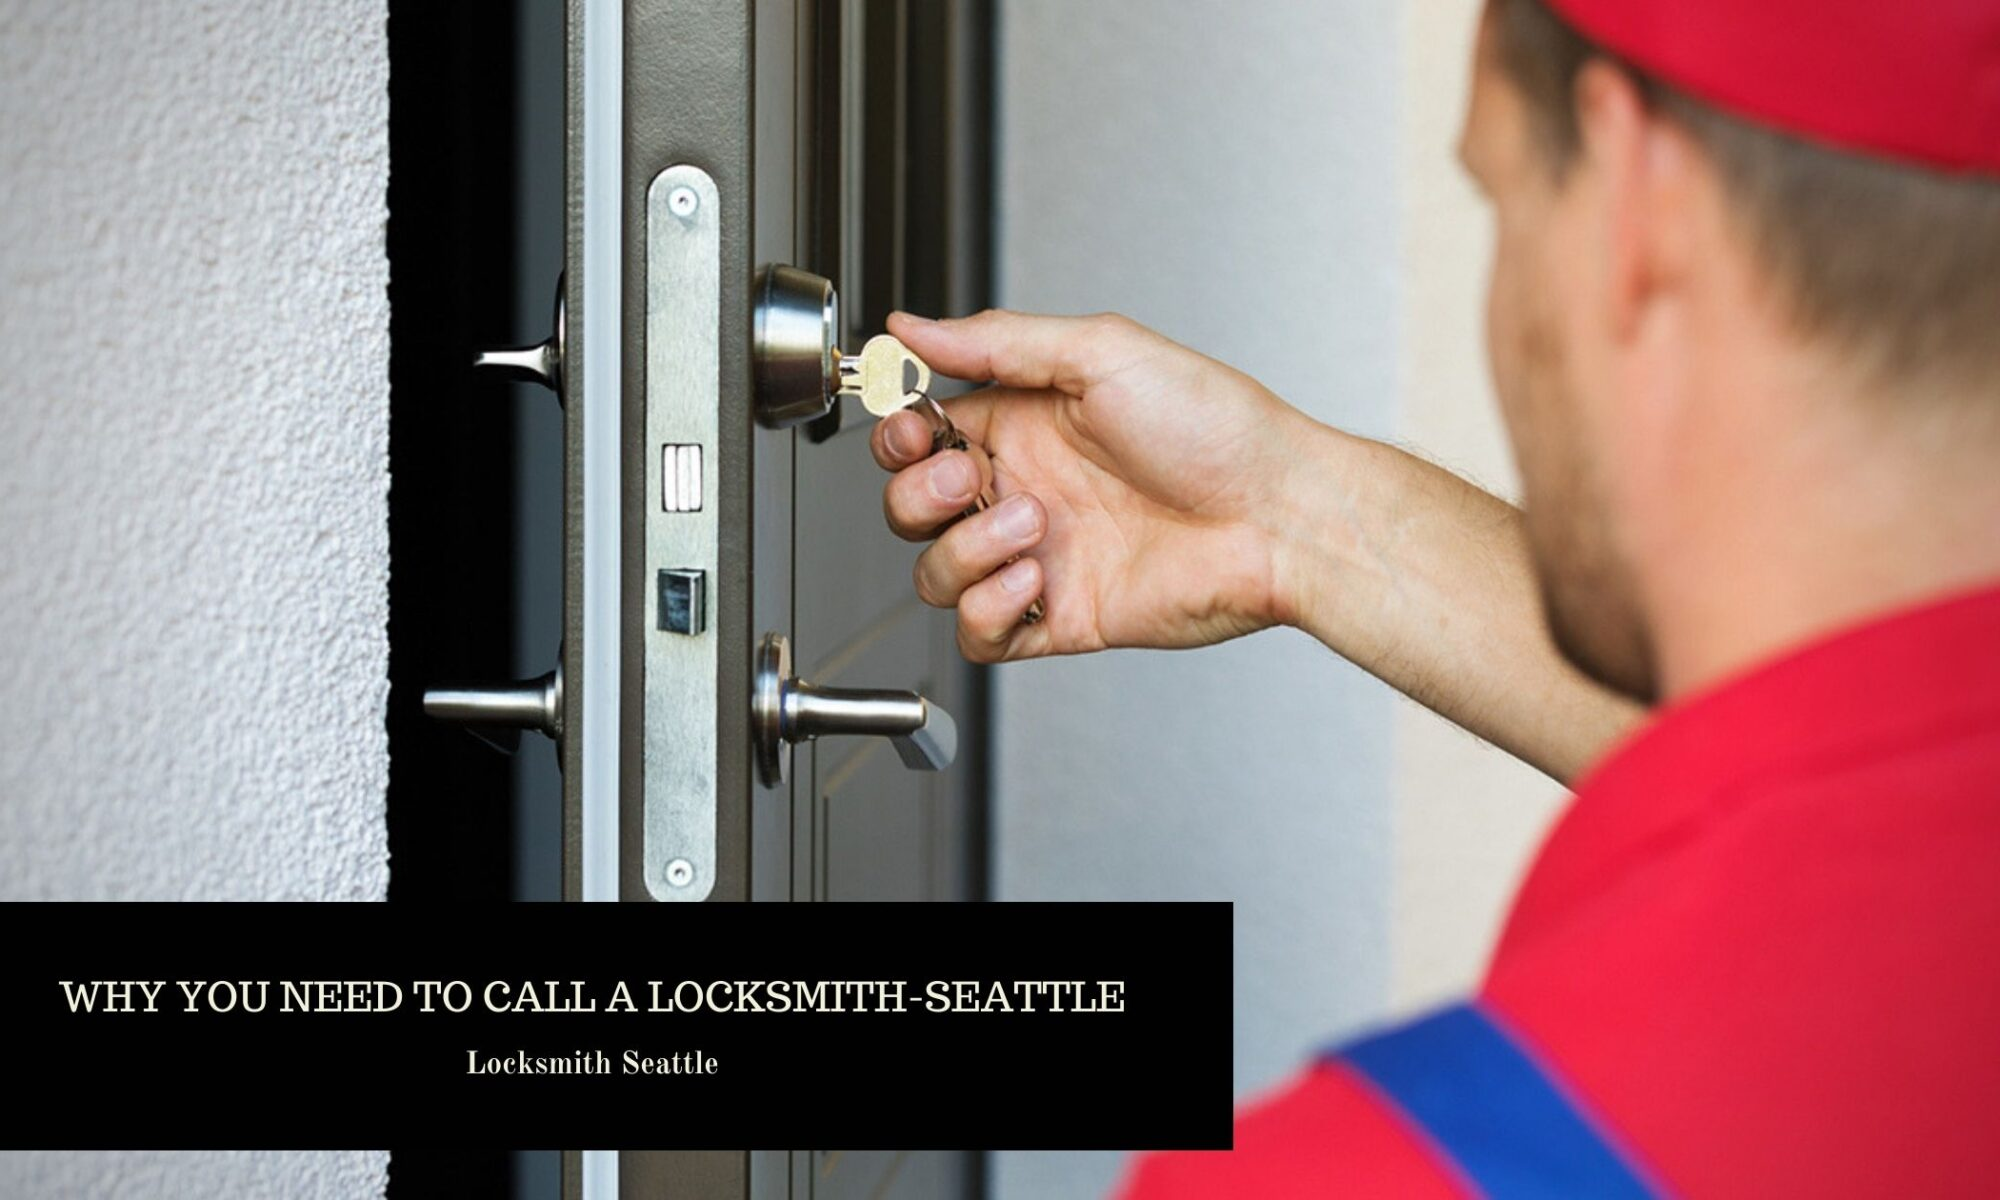 Why-You-Need-to-Call-a-Locksmith-Seattle